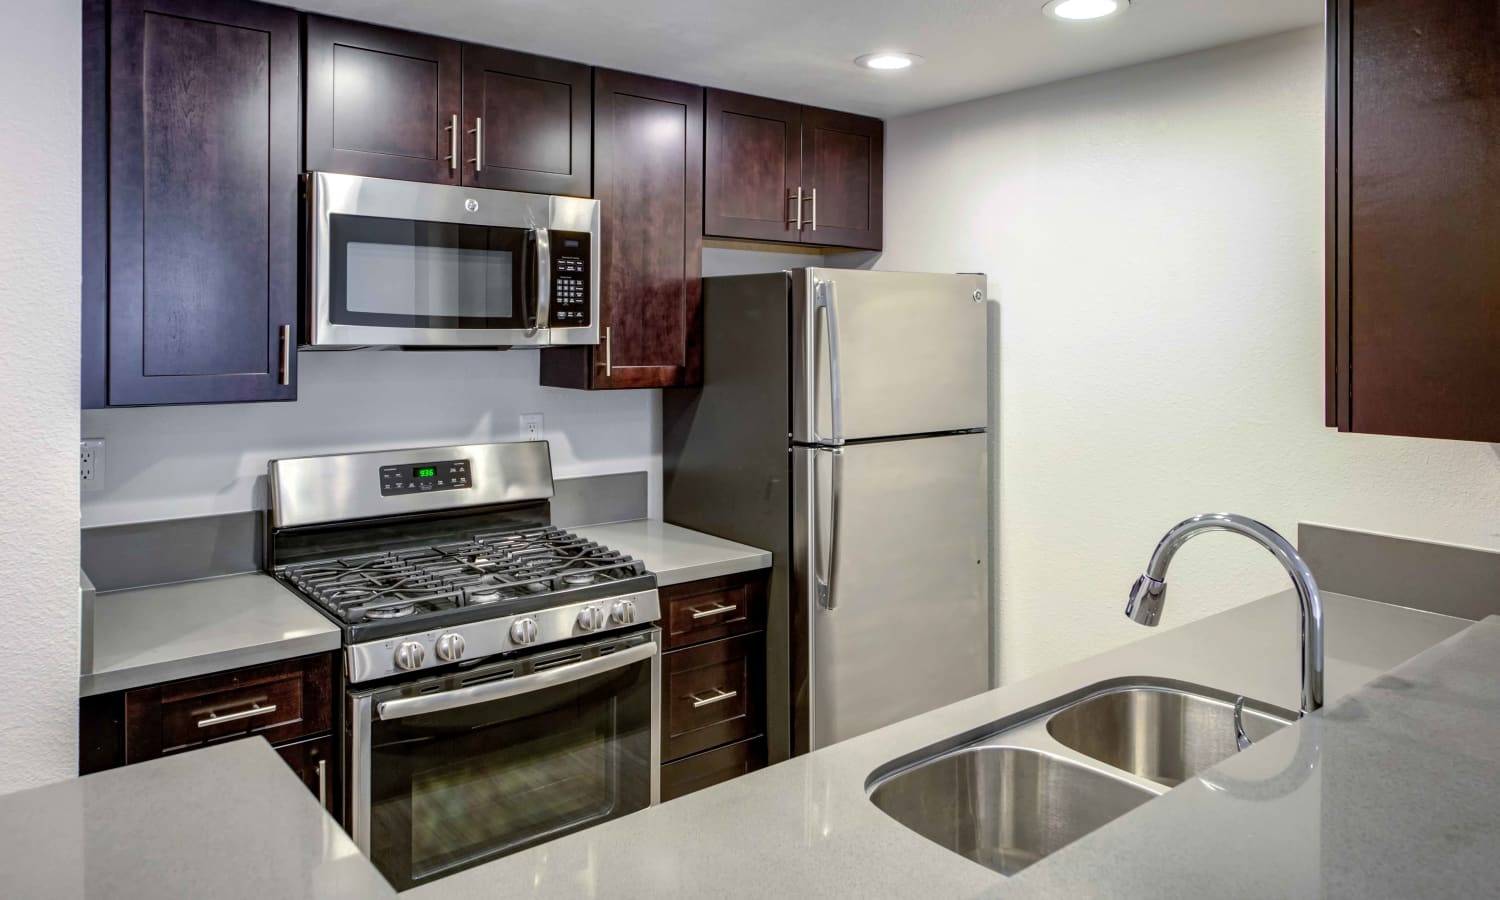 Sofi at 3rd offers a spacious kitchen in Long Beach, California